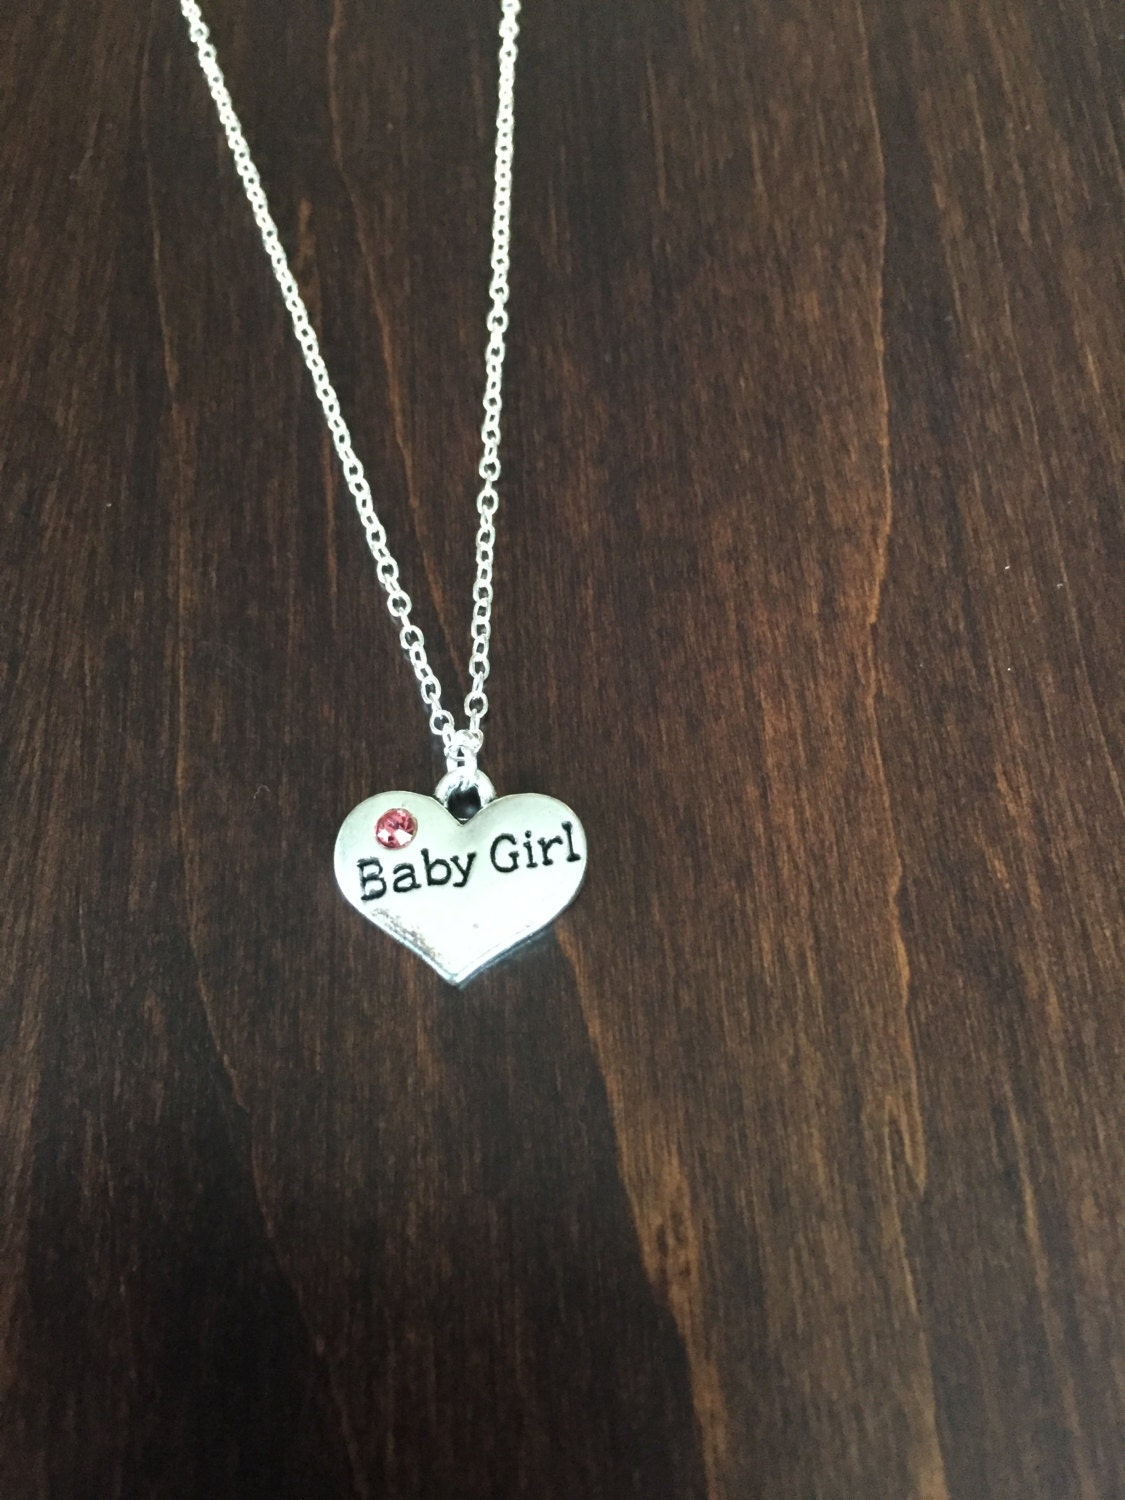 Baby Gift Jewelry For Mom : Gift for new mom baby girl necklace jewelry